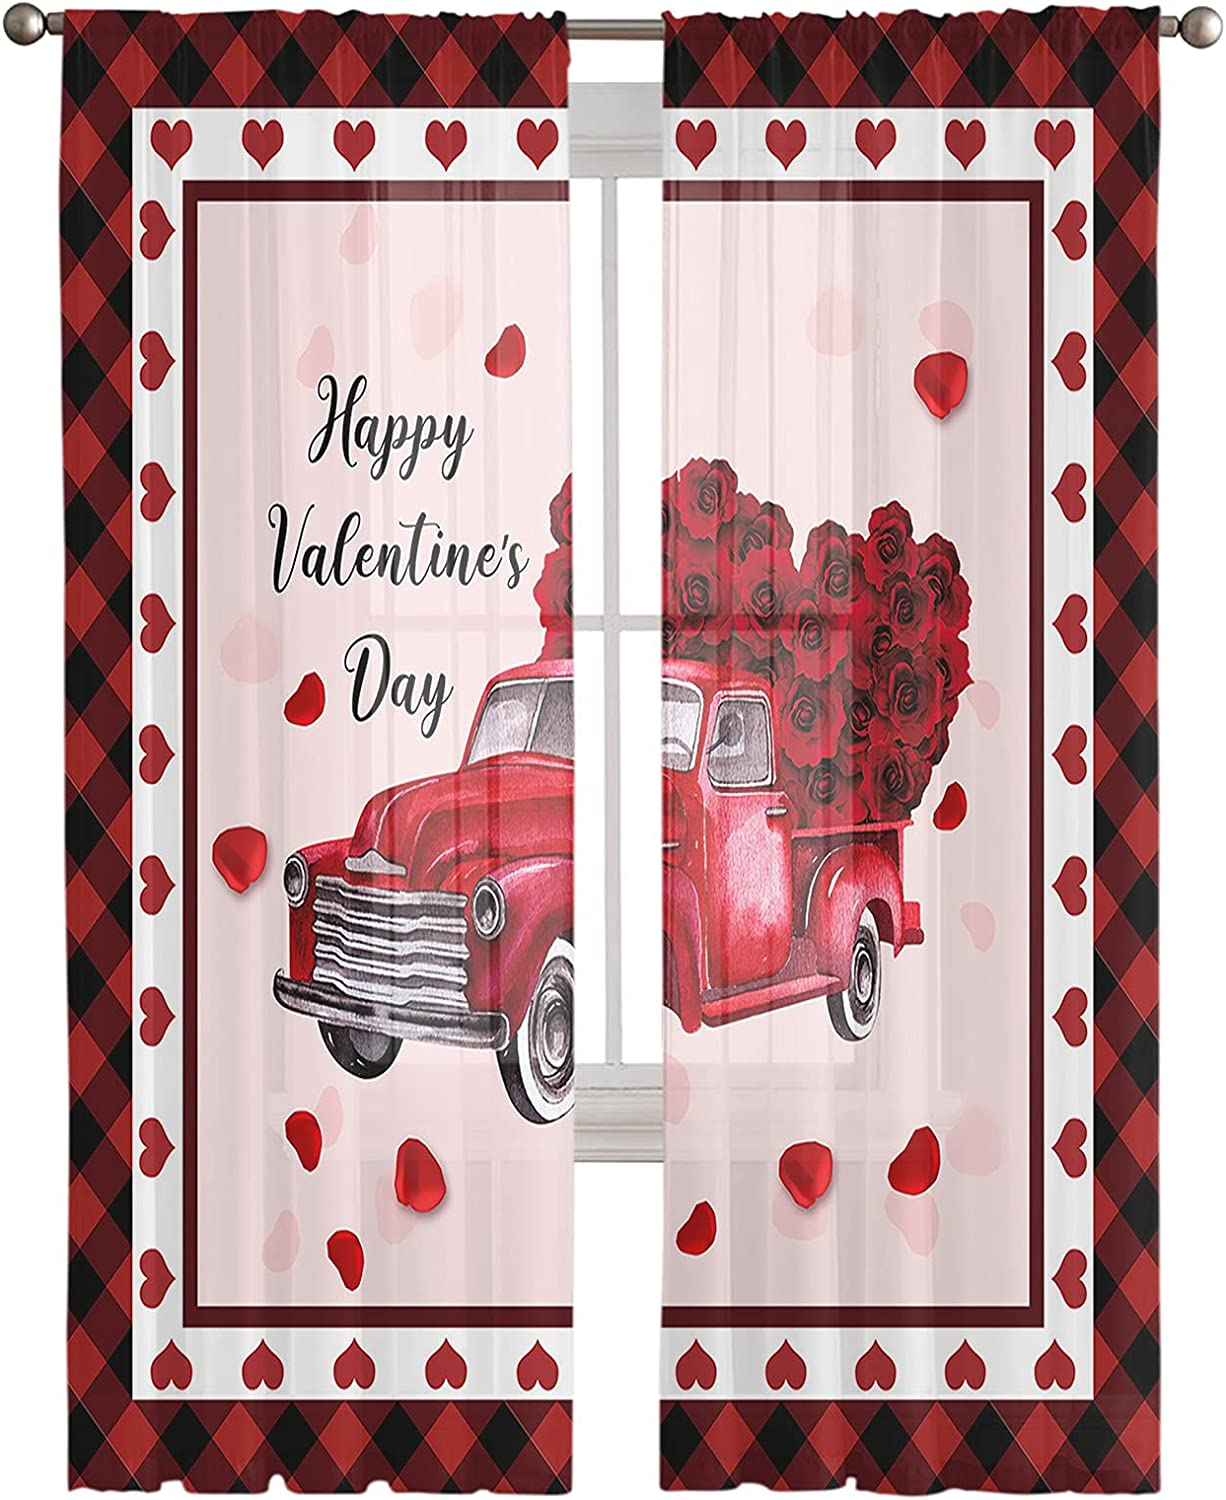 Semi Charlotte Mall Sheer Window Limited price sale Curtain for Room Bedroom Valentin Happy Living